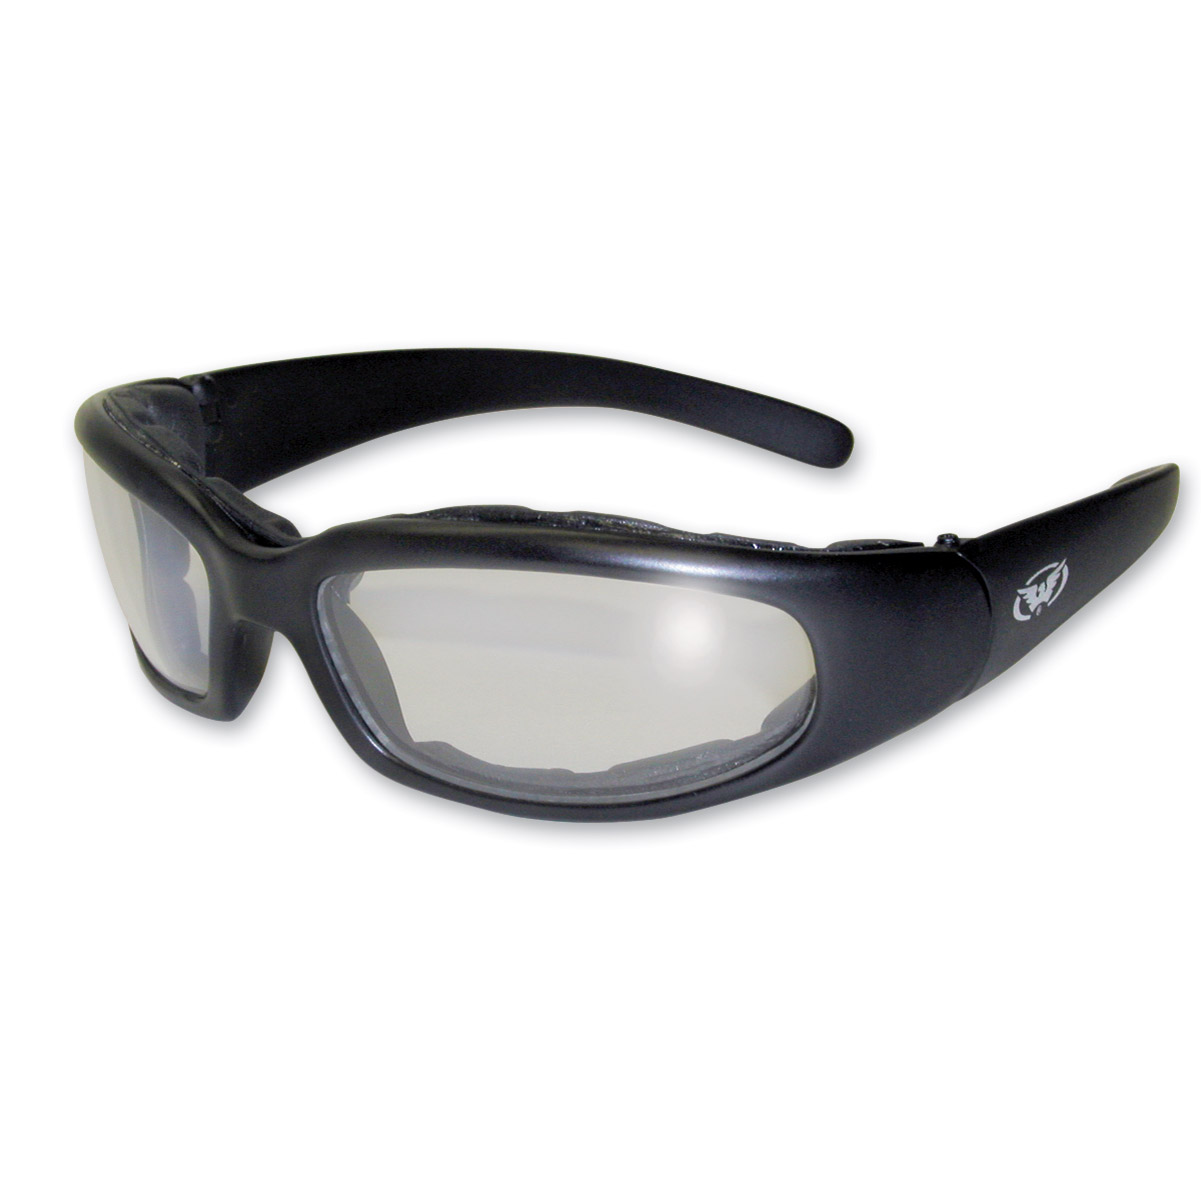 Global Vision Eyewear Chicago 24 Photochromic Sunglasses